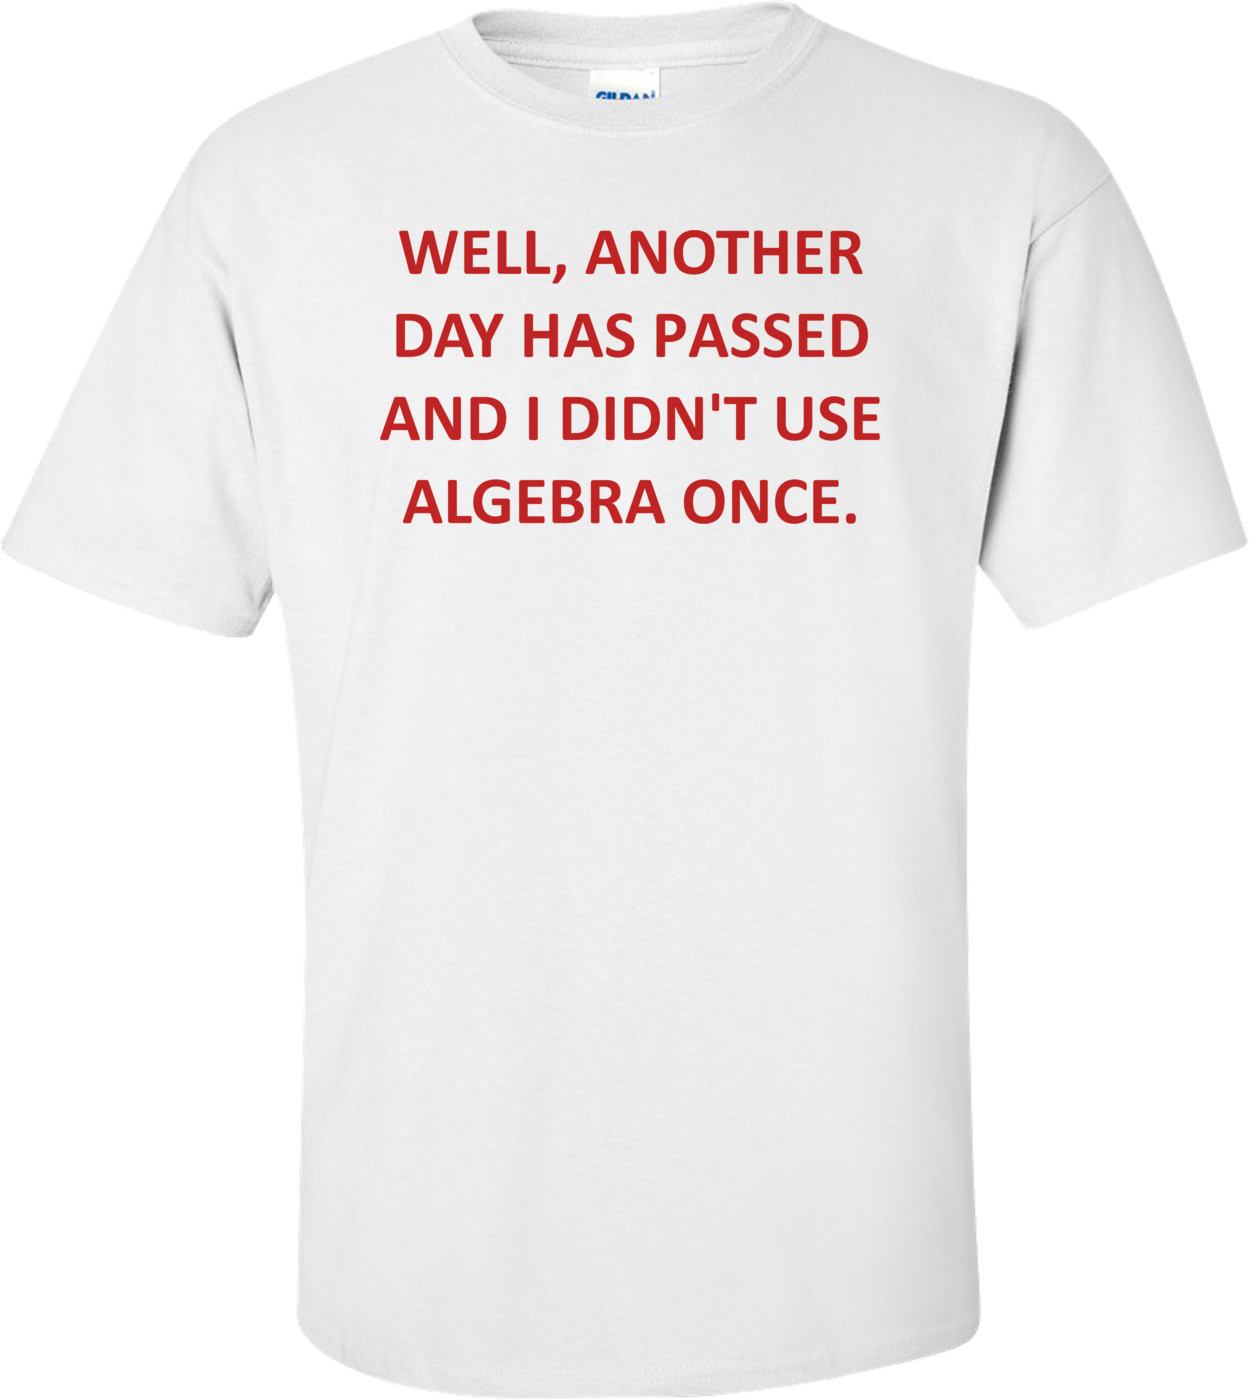 WELL, ANOTHER DAY HAS PASSED AND I DIDN'T USE ALGEBRA ONCE. Shirt